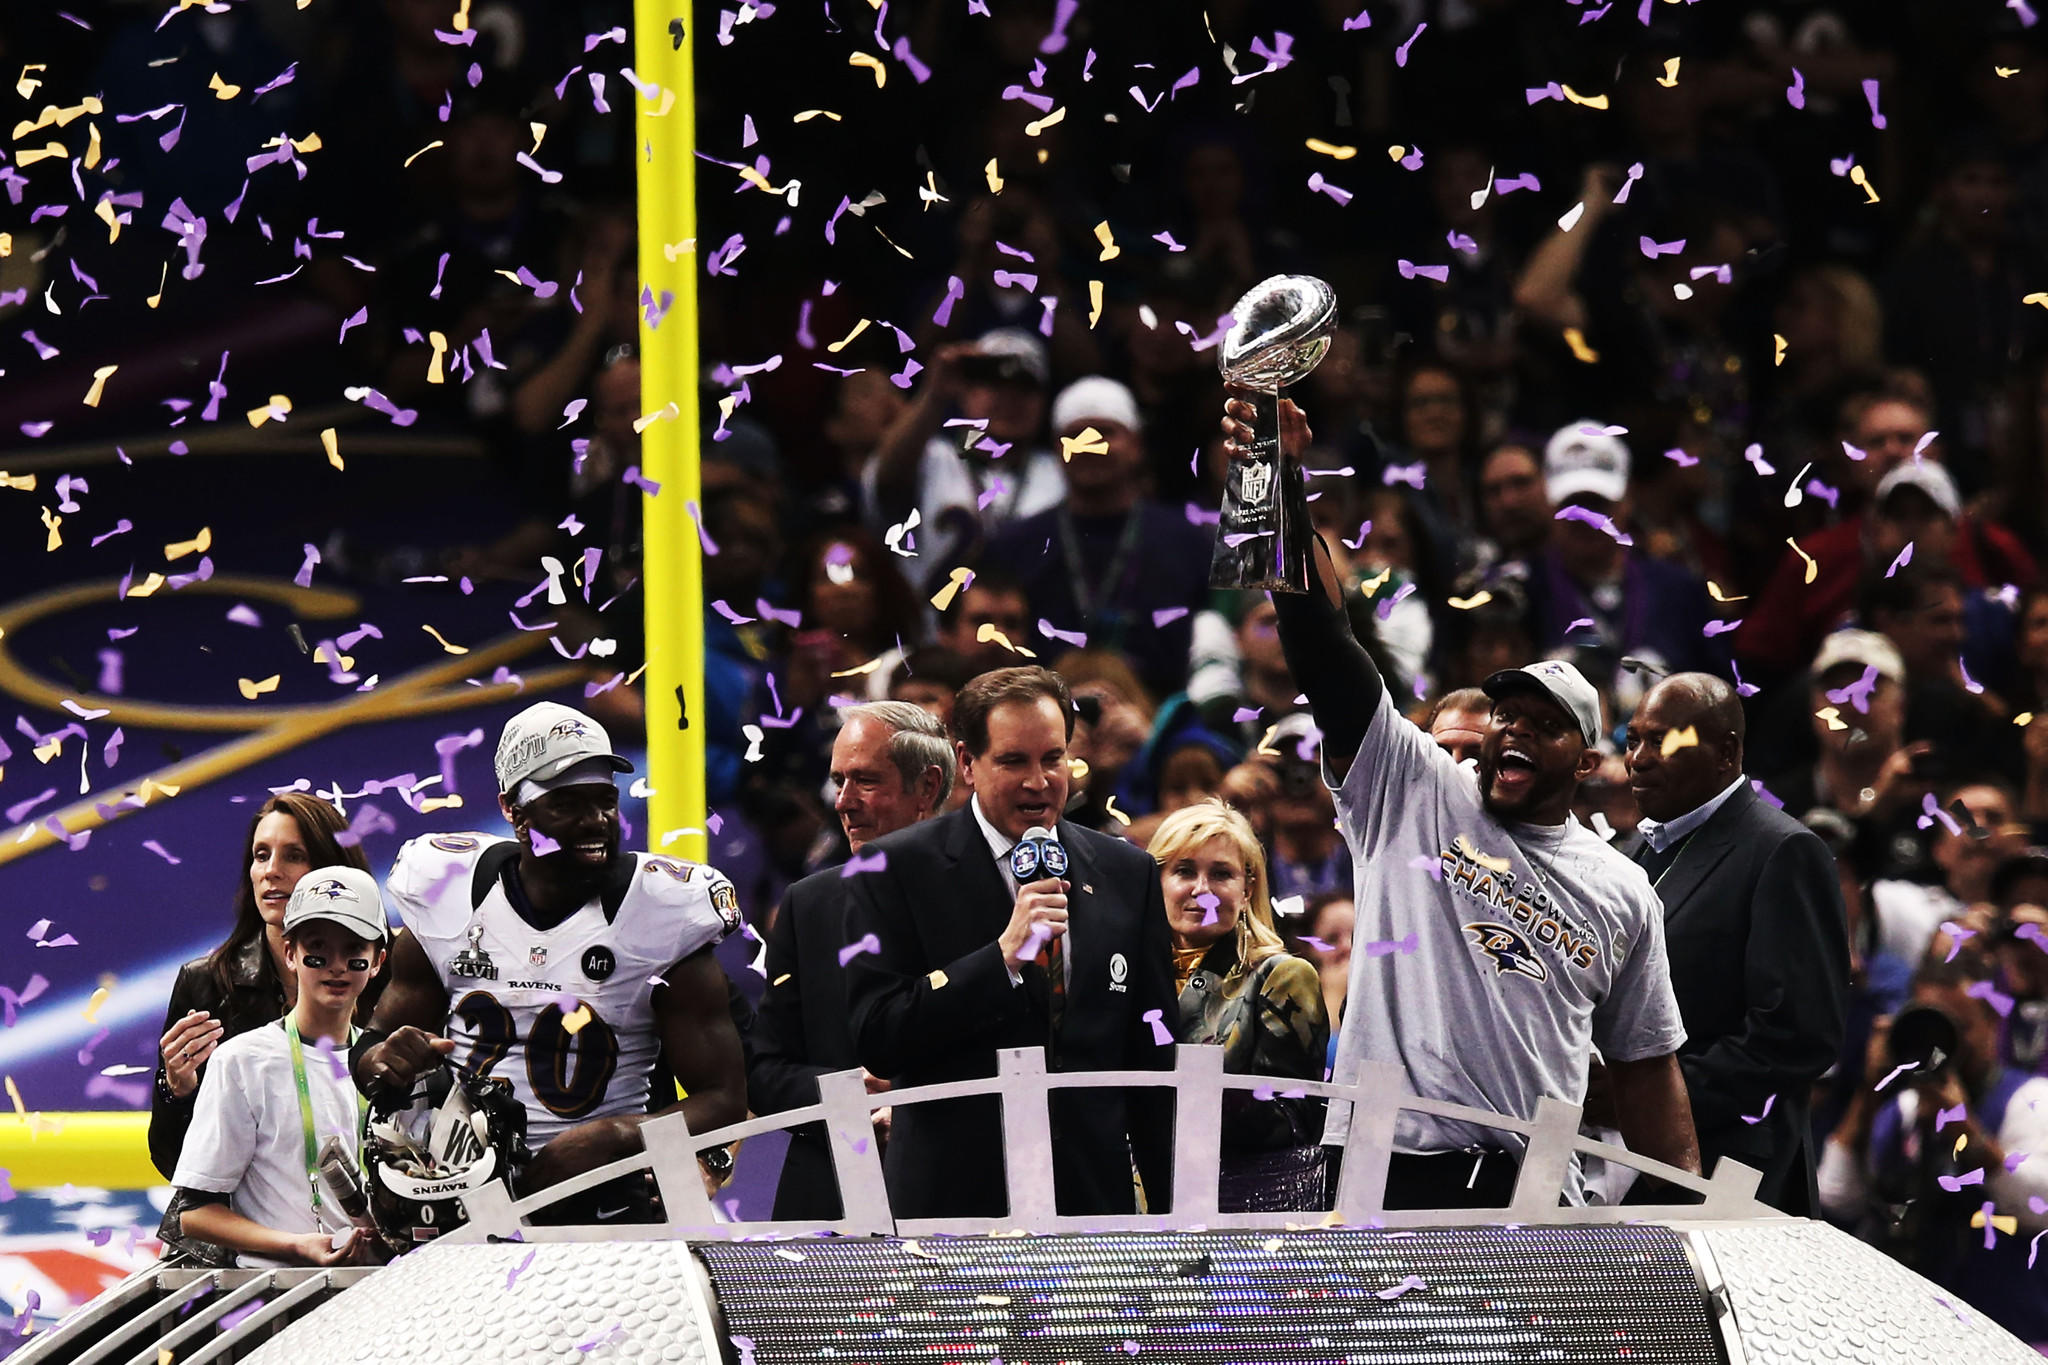 Baltimore Ravens wins Superbowl